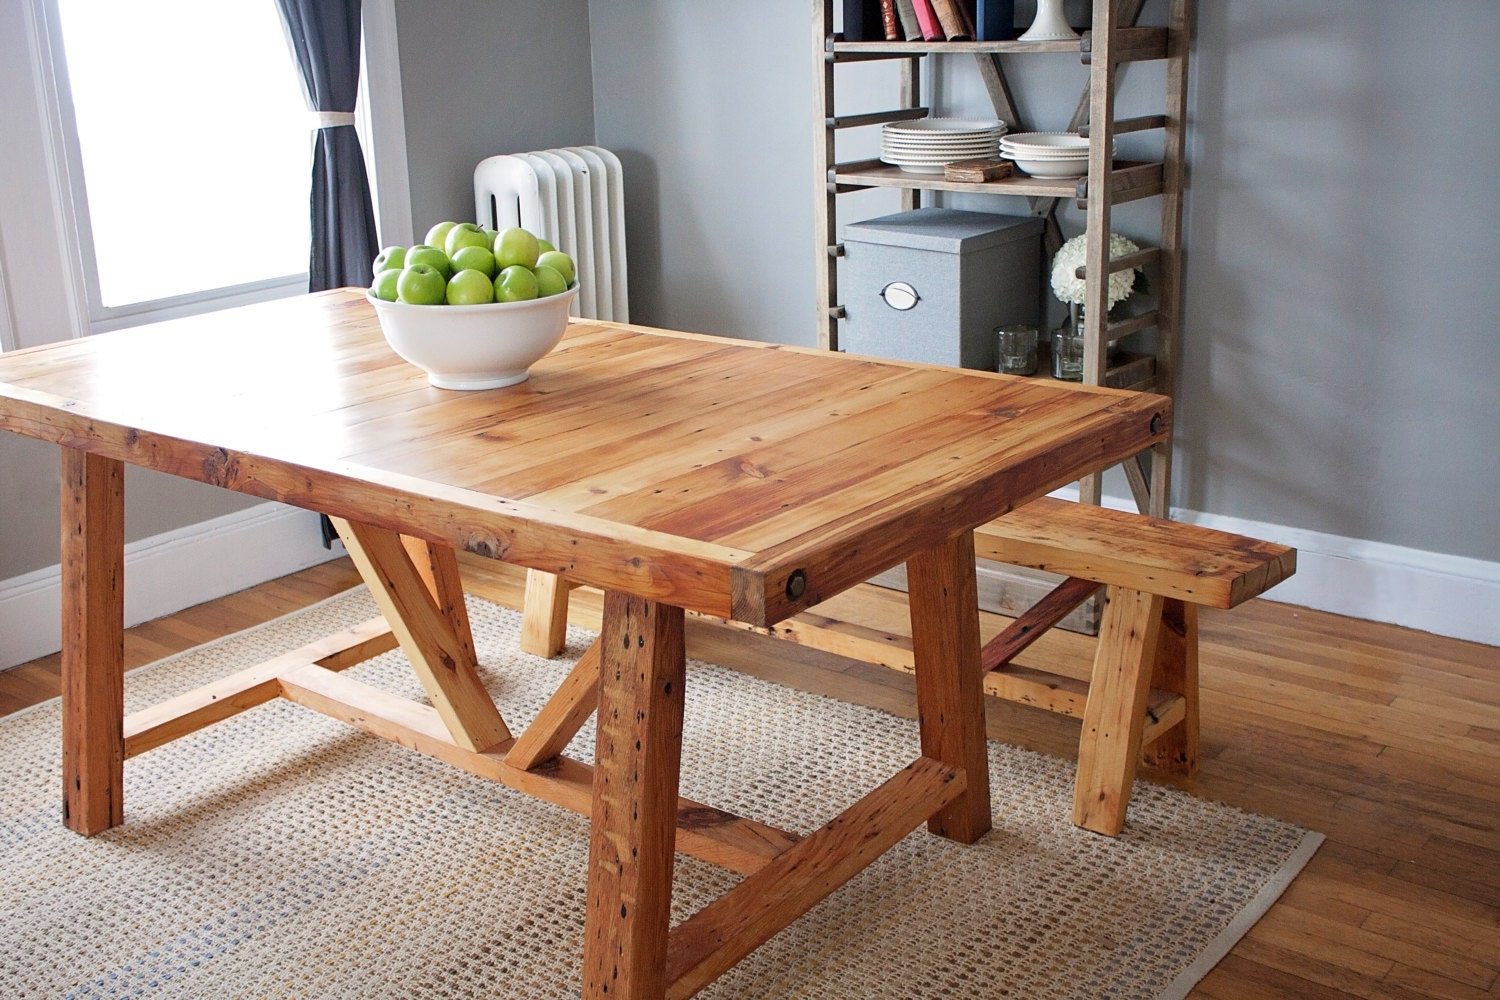 Reclaimed wood farmhouse dining table and bench by uniqueindustry - Trendy dining tables ...